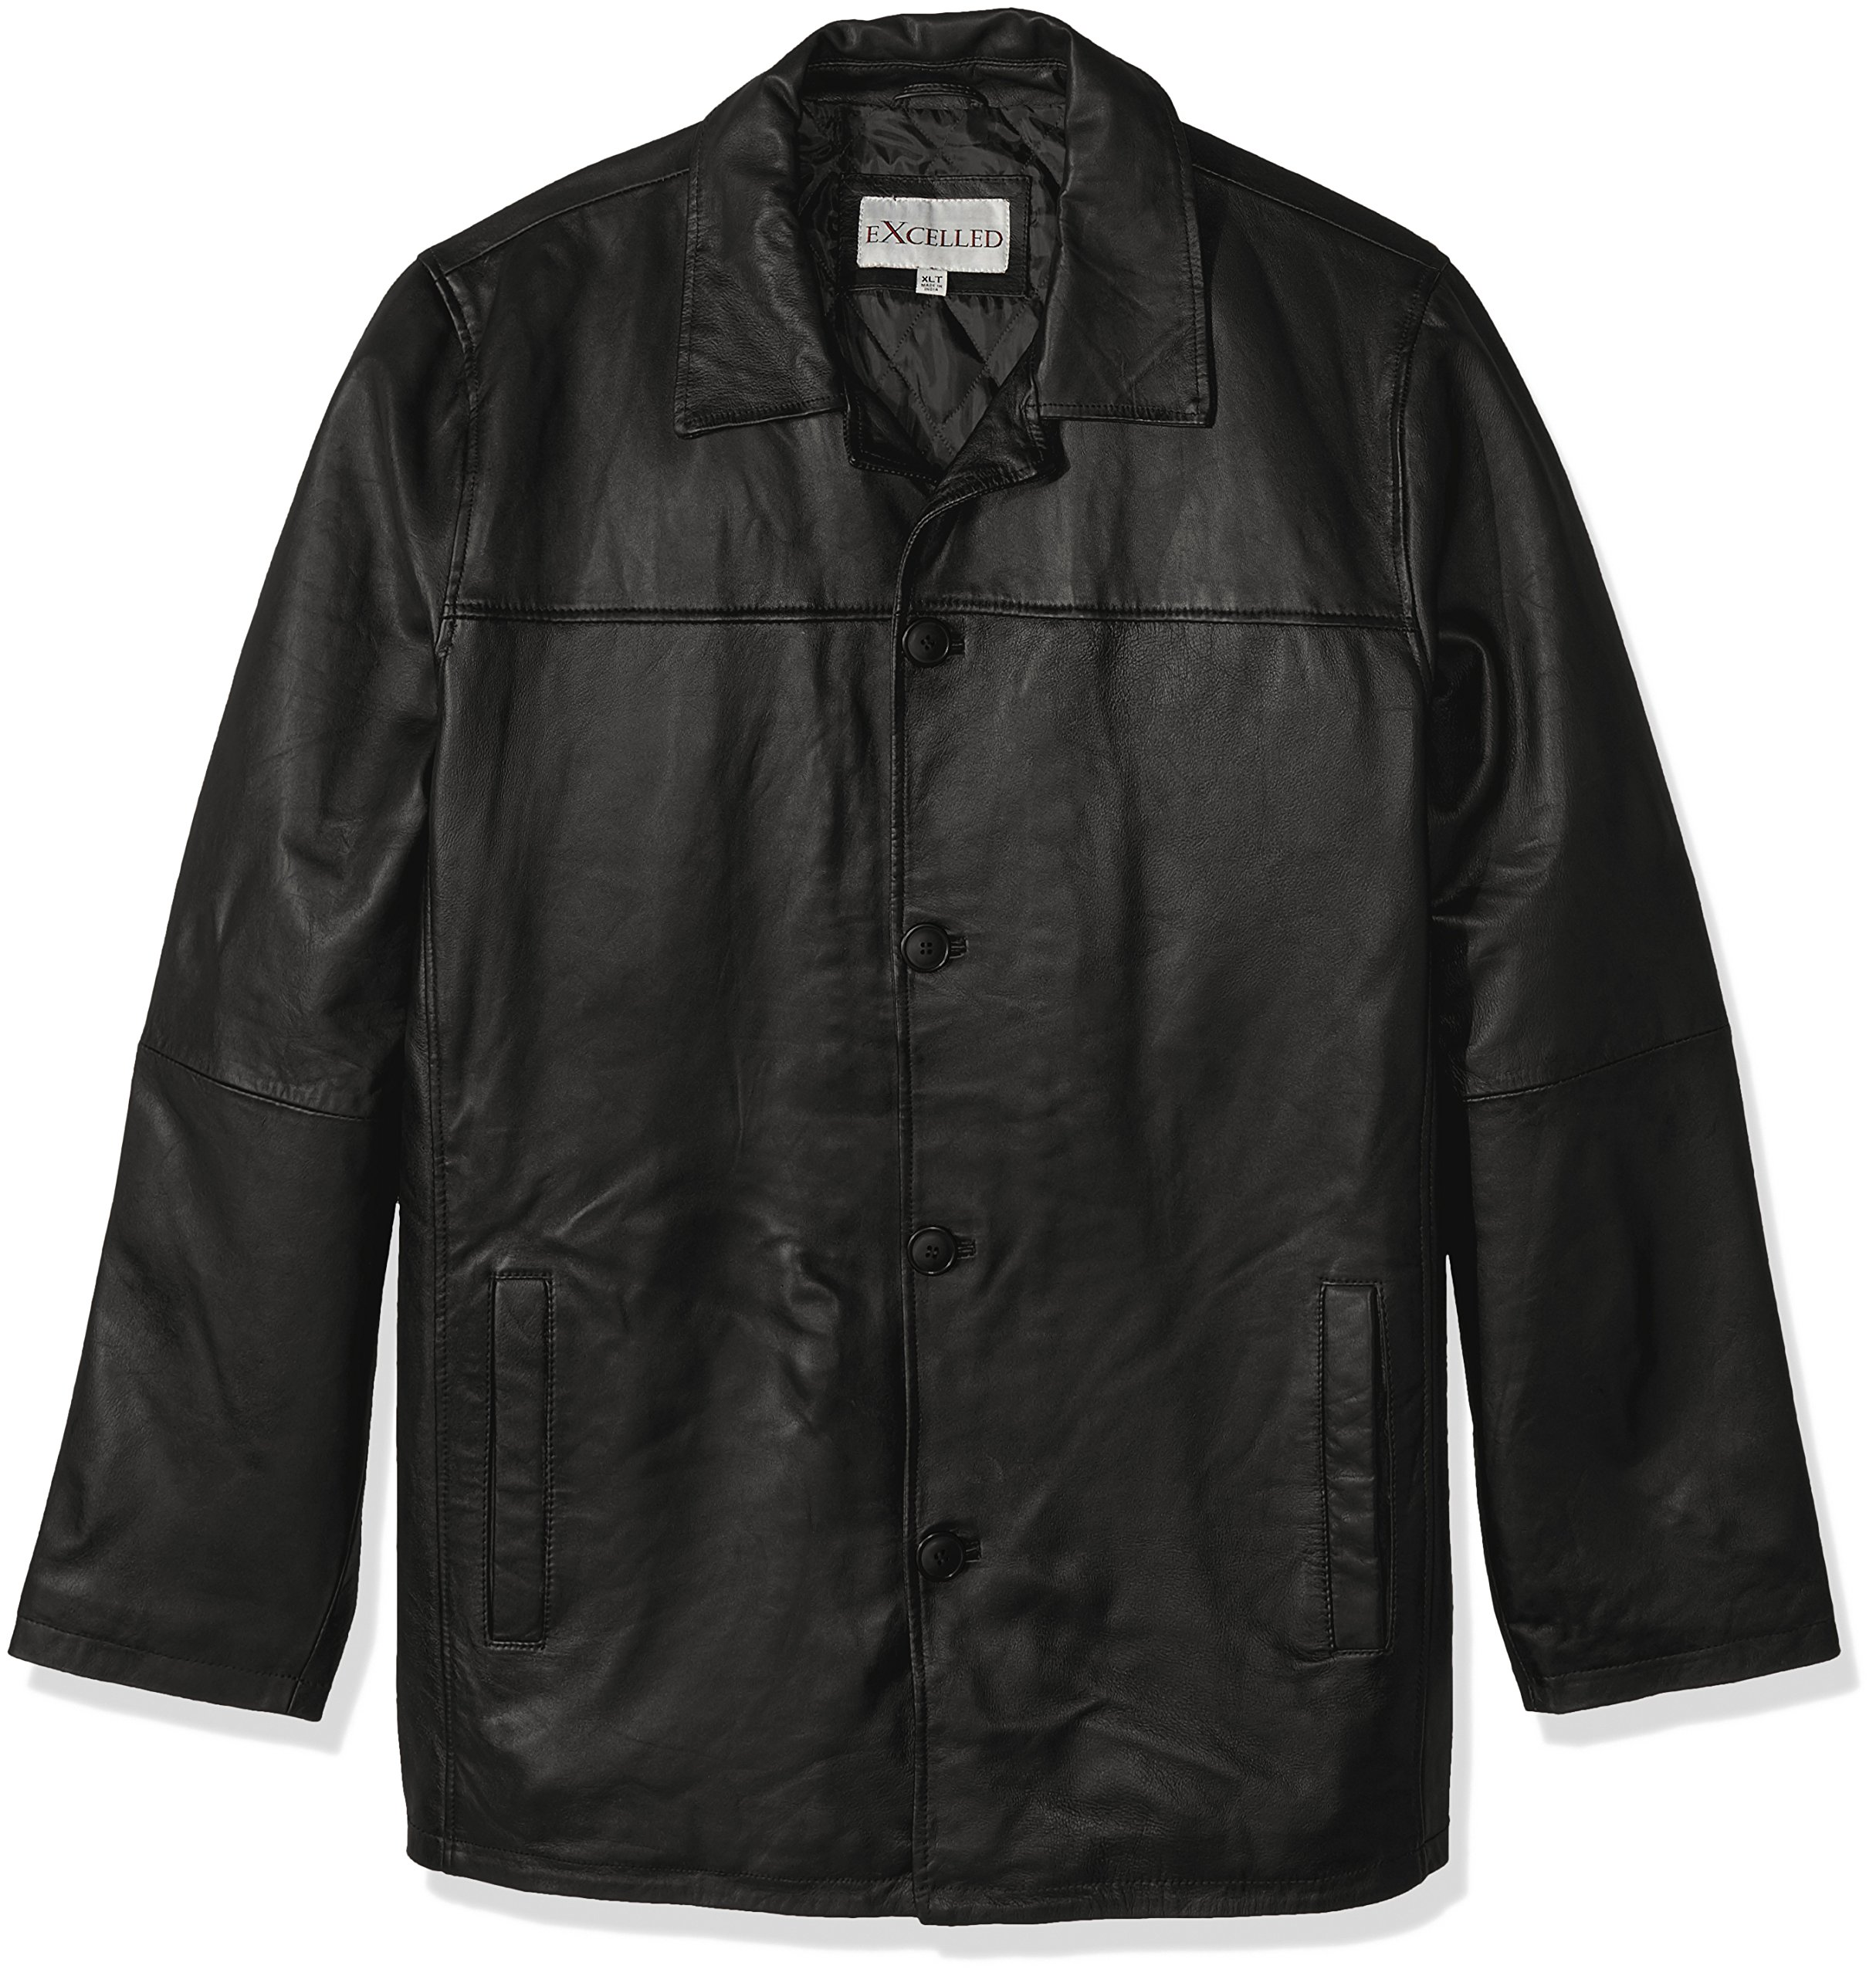 Excelled Men's Big and Tall Four-Button Lambskin Leather Car Coat, Black, 4XL